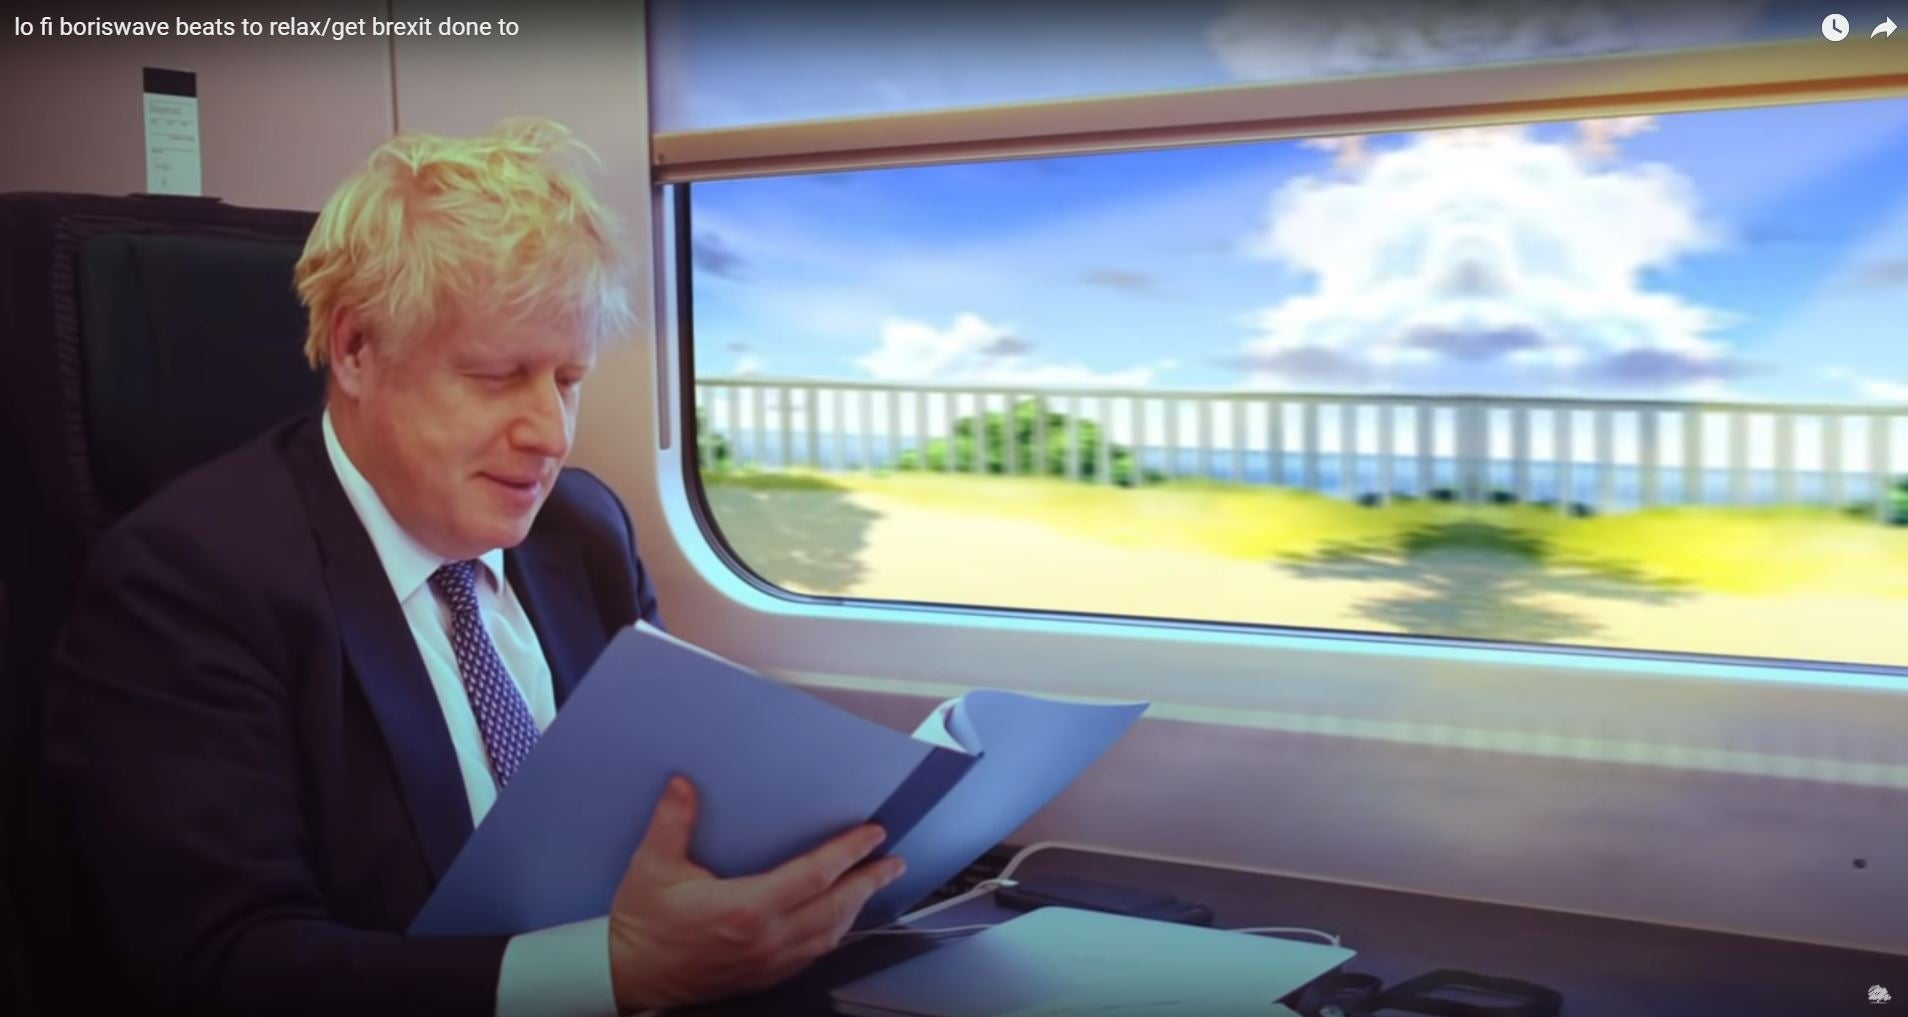 lo fi boriswave: Why are the Conservatives posting 71-minute hypnotic videos to YouTube?